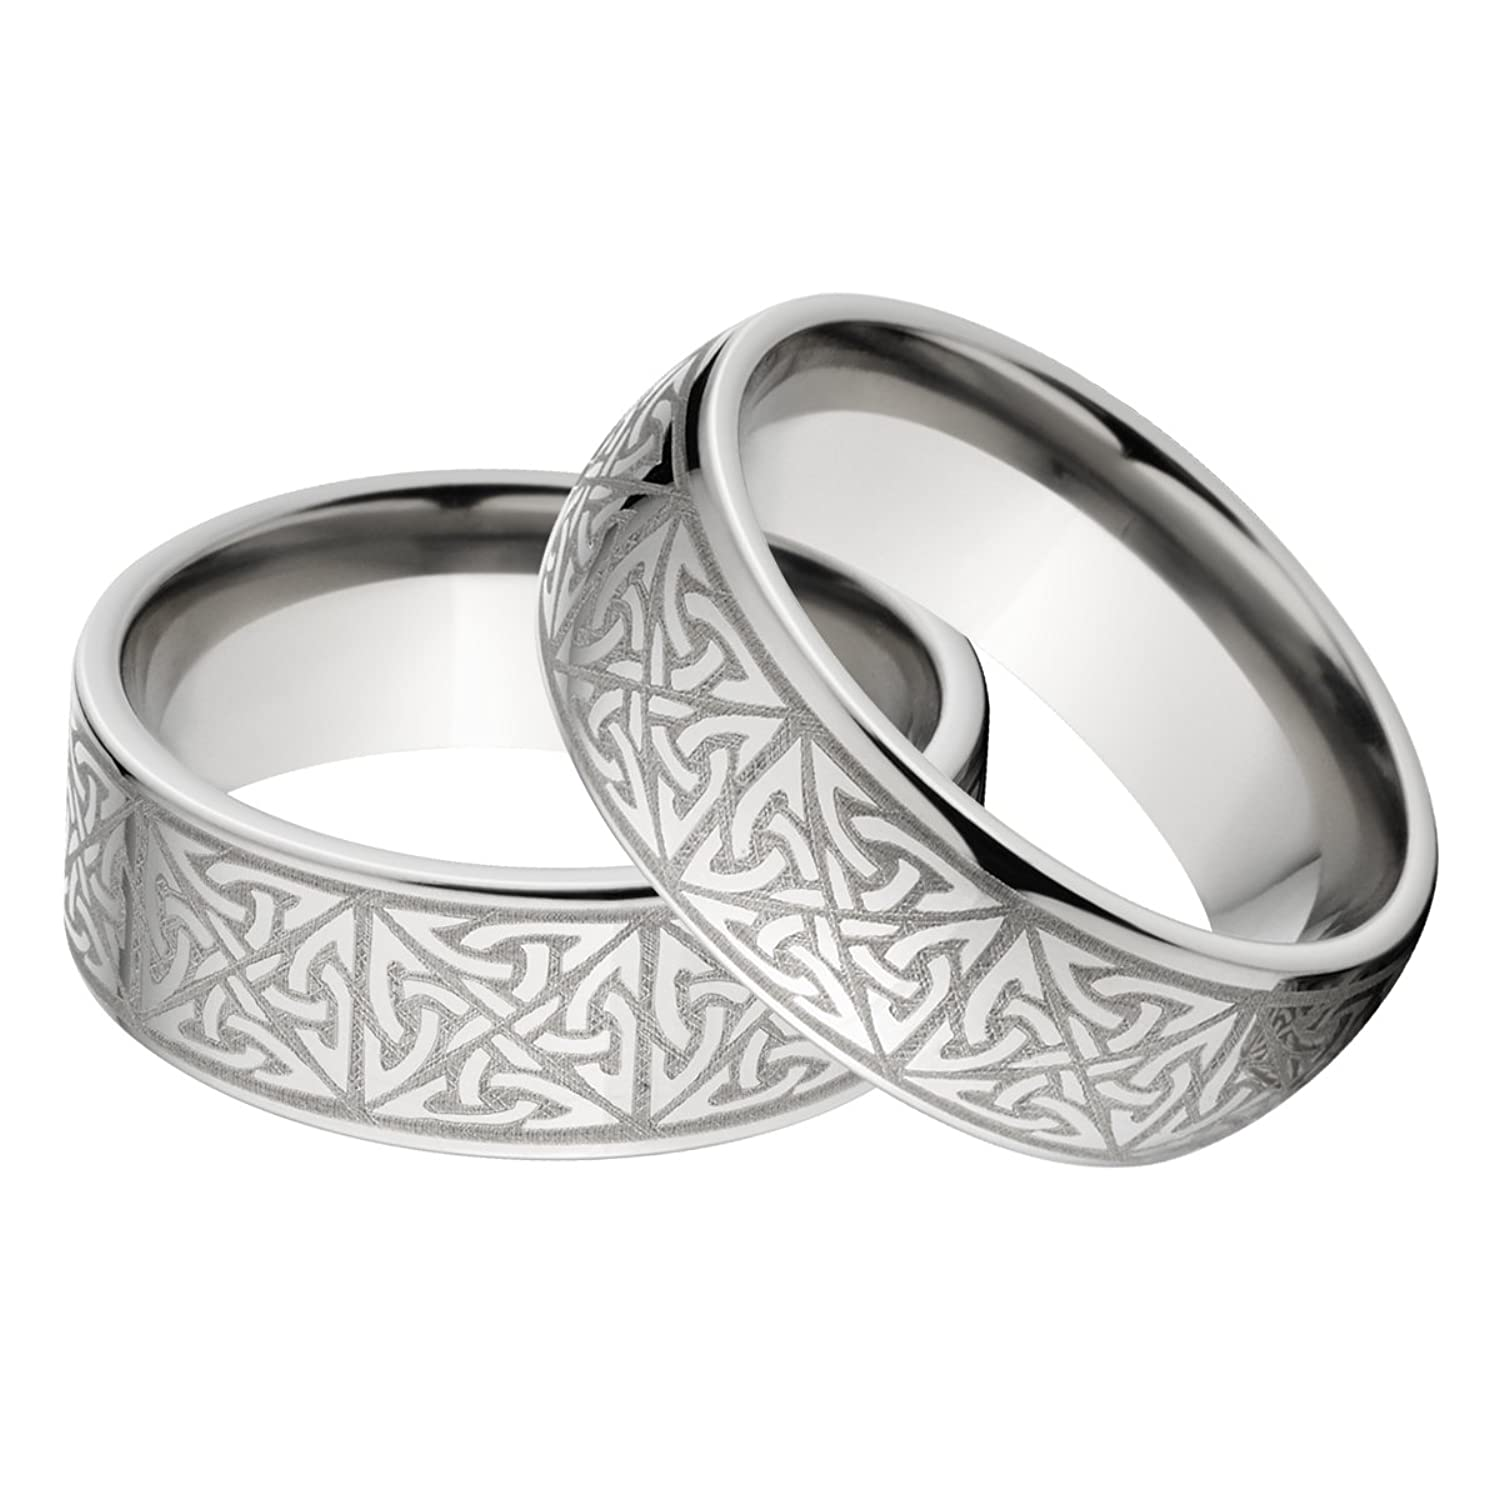 of scottish com unique wedding rikof rings concept ring lovely ideas knot inscriptions gaelic celtic bands